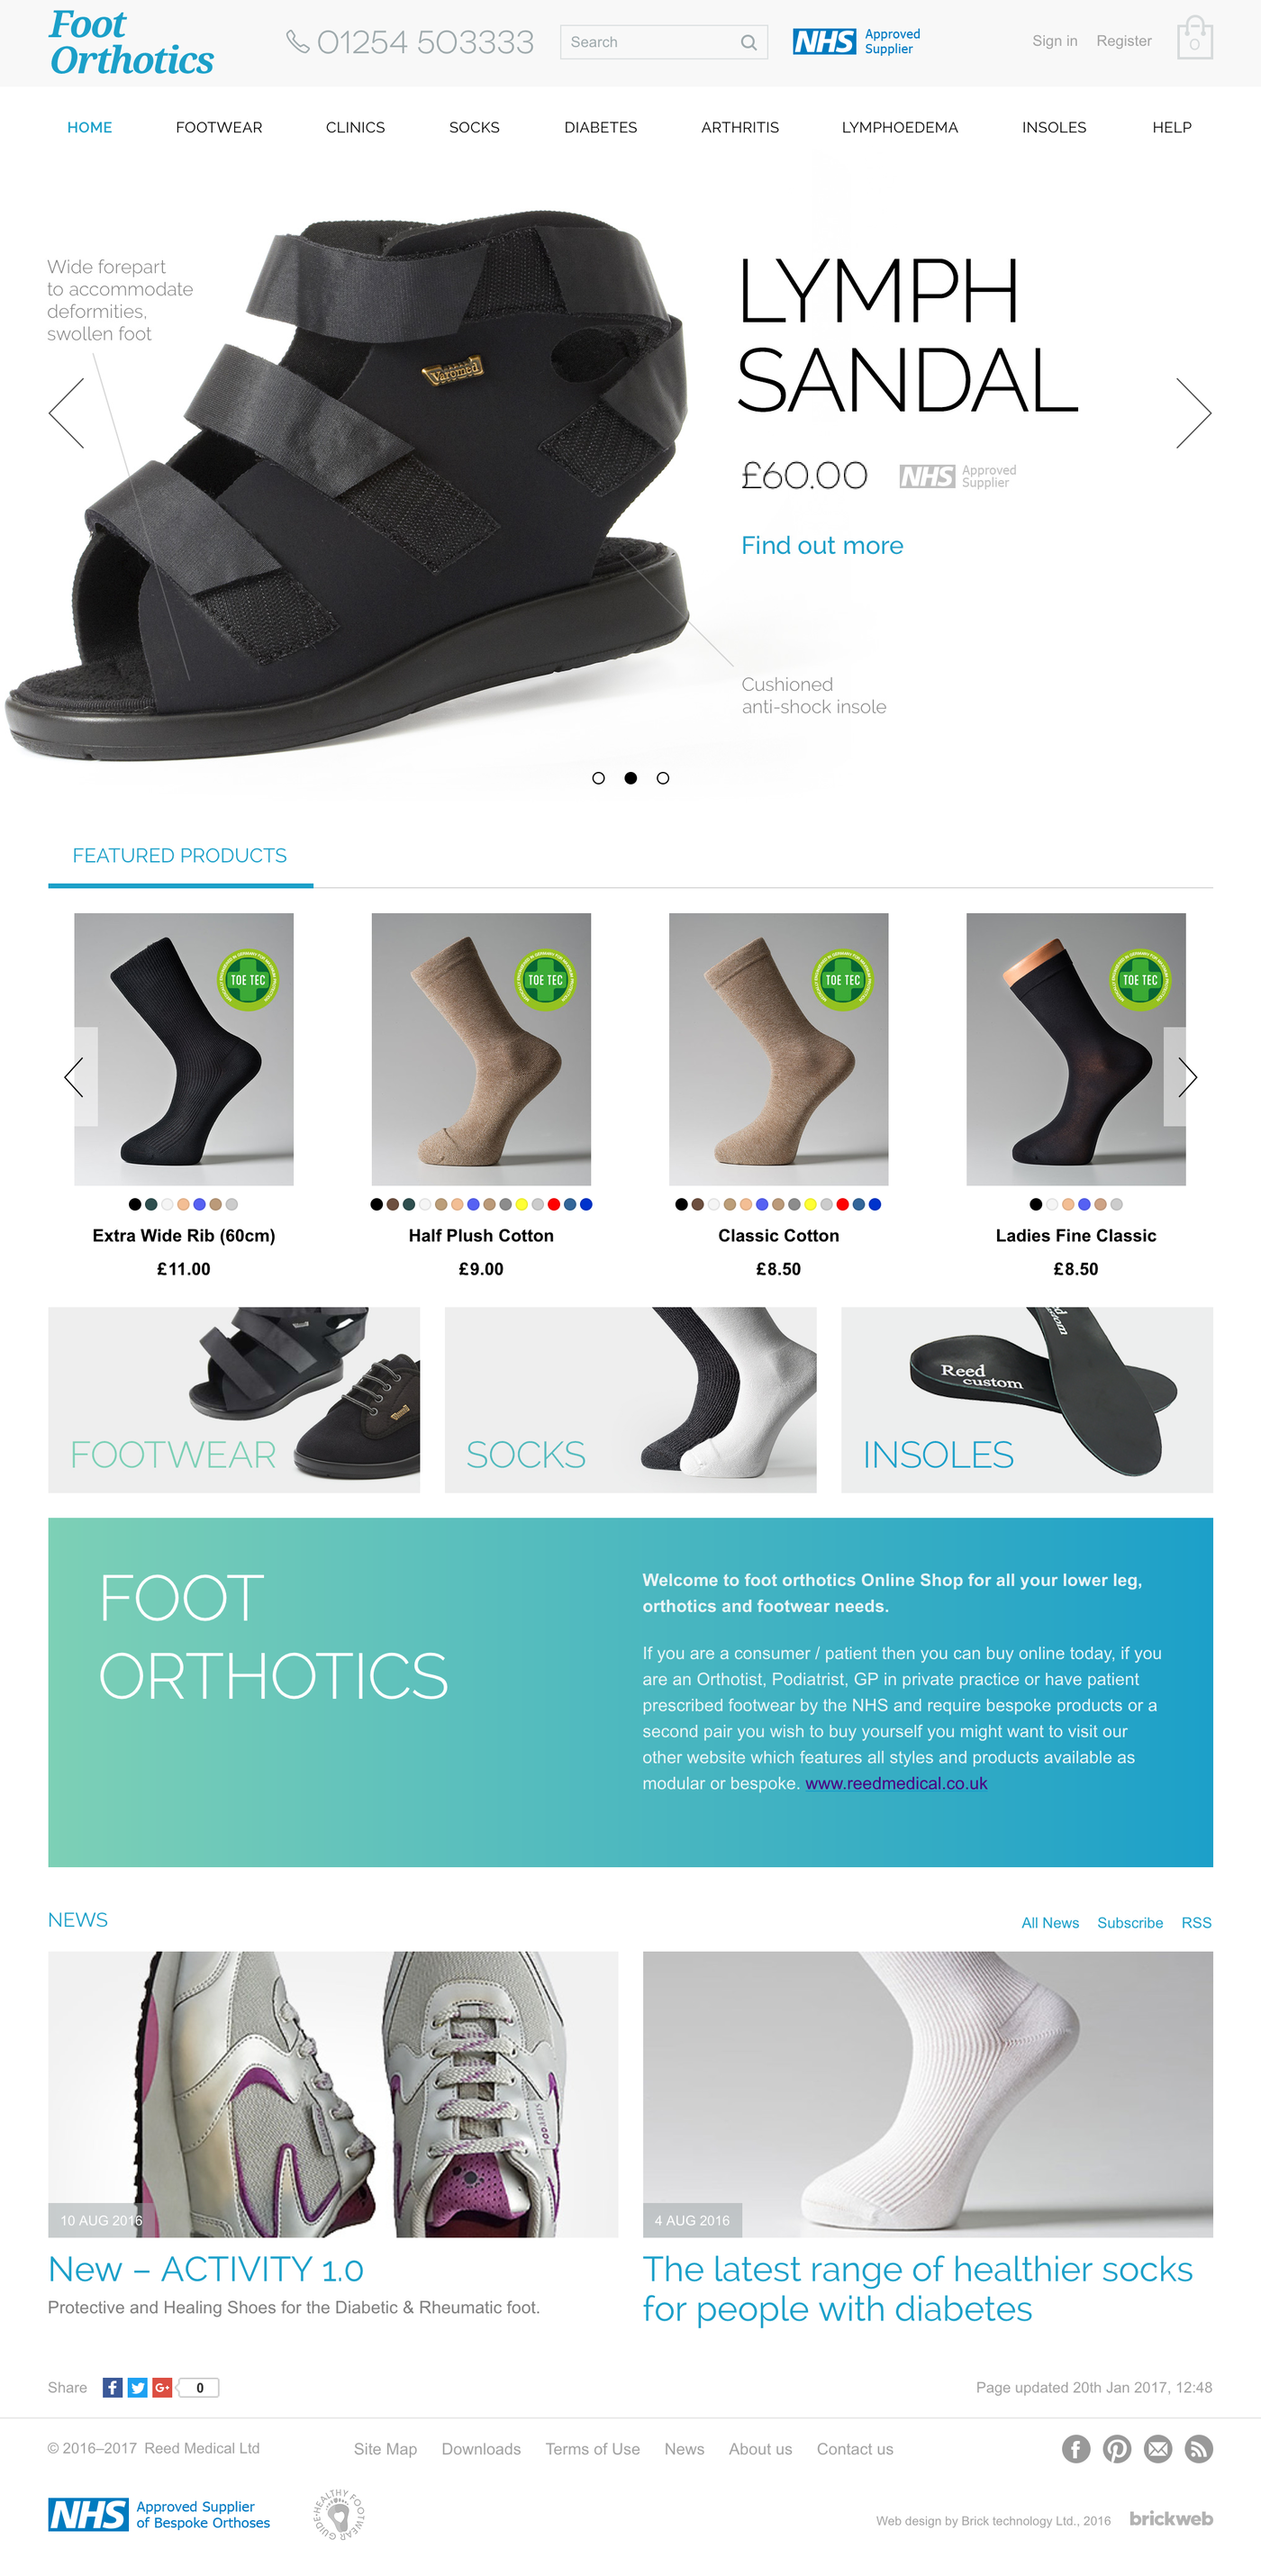 Foot Orthotics Home page